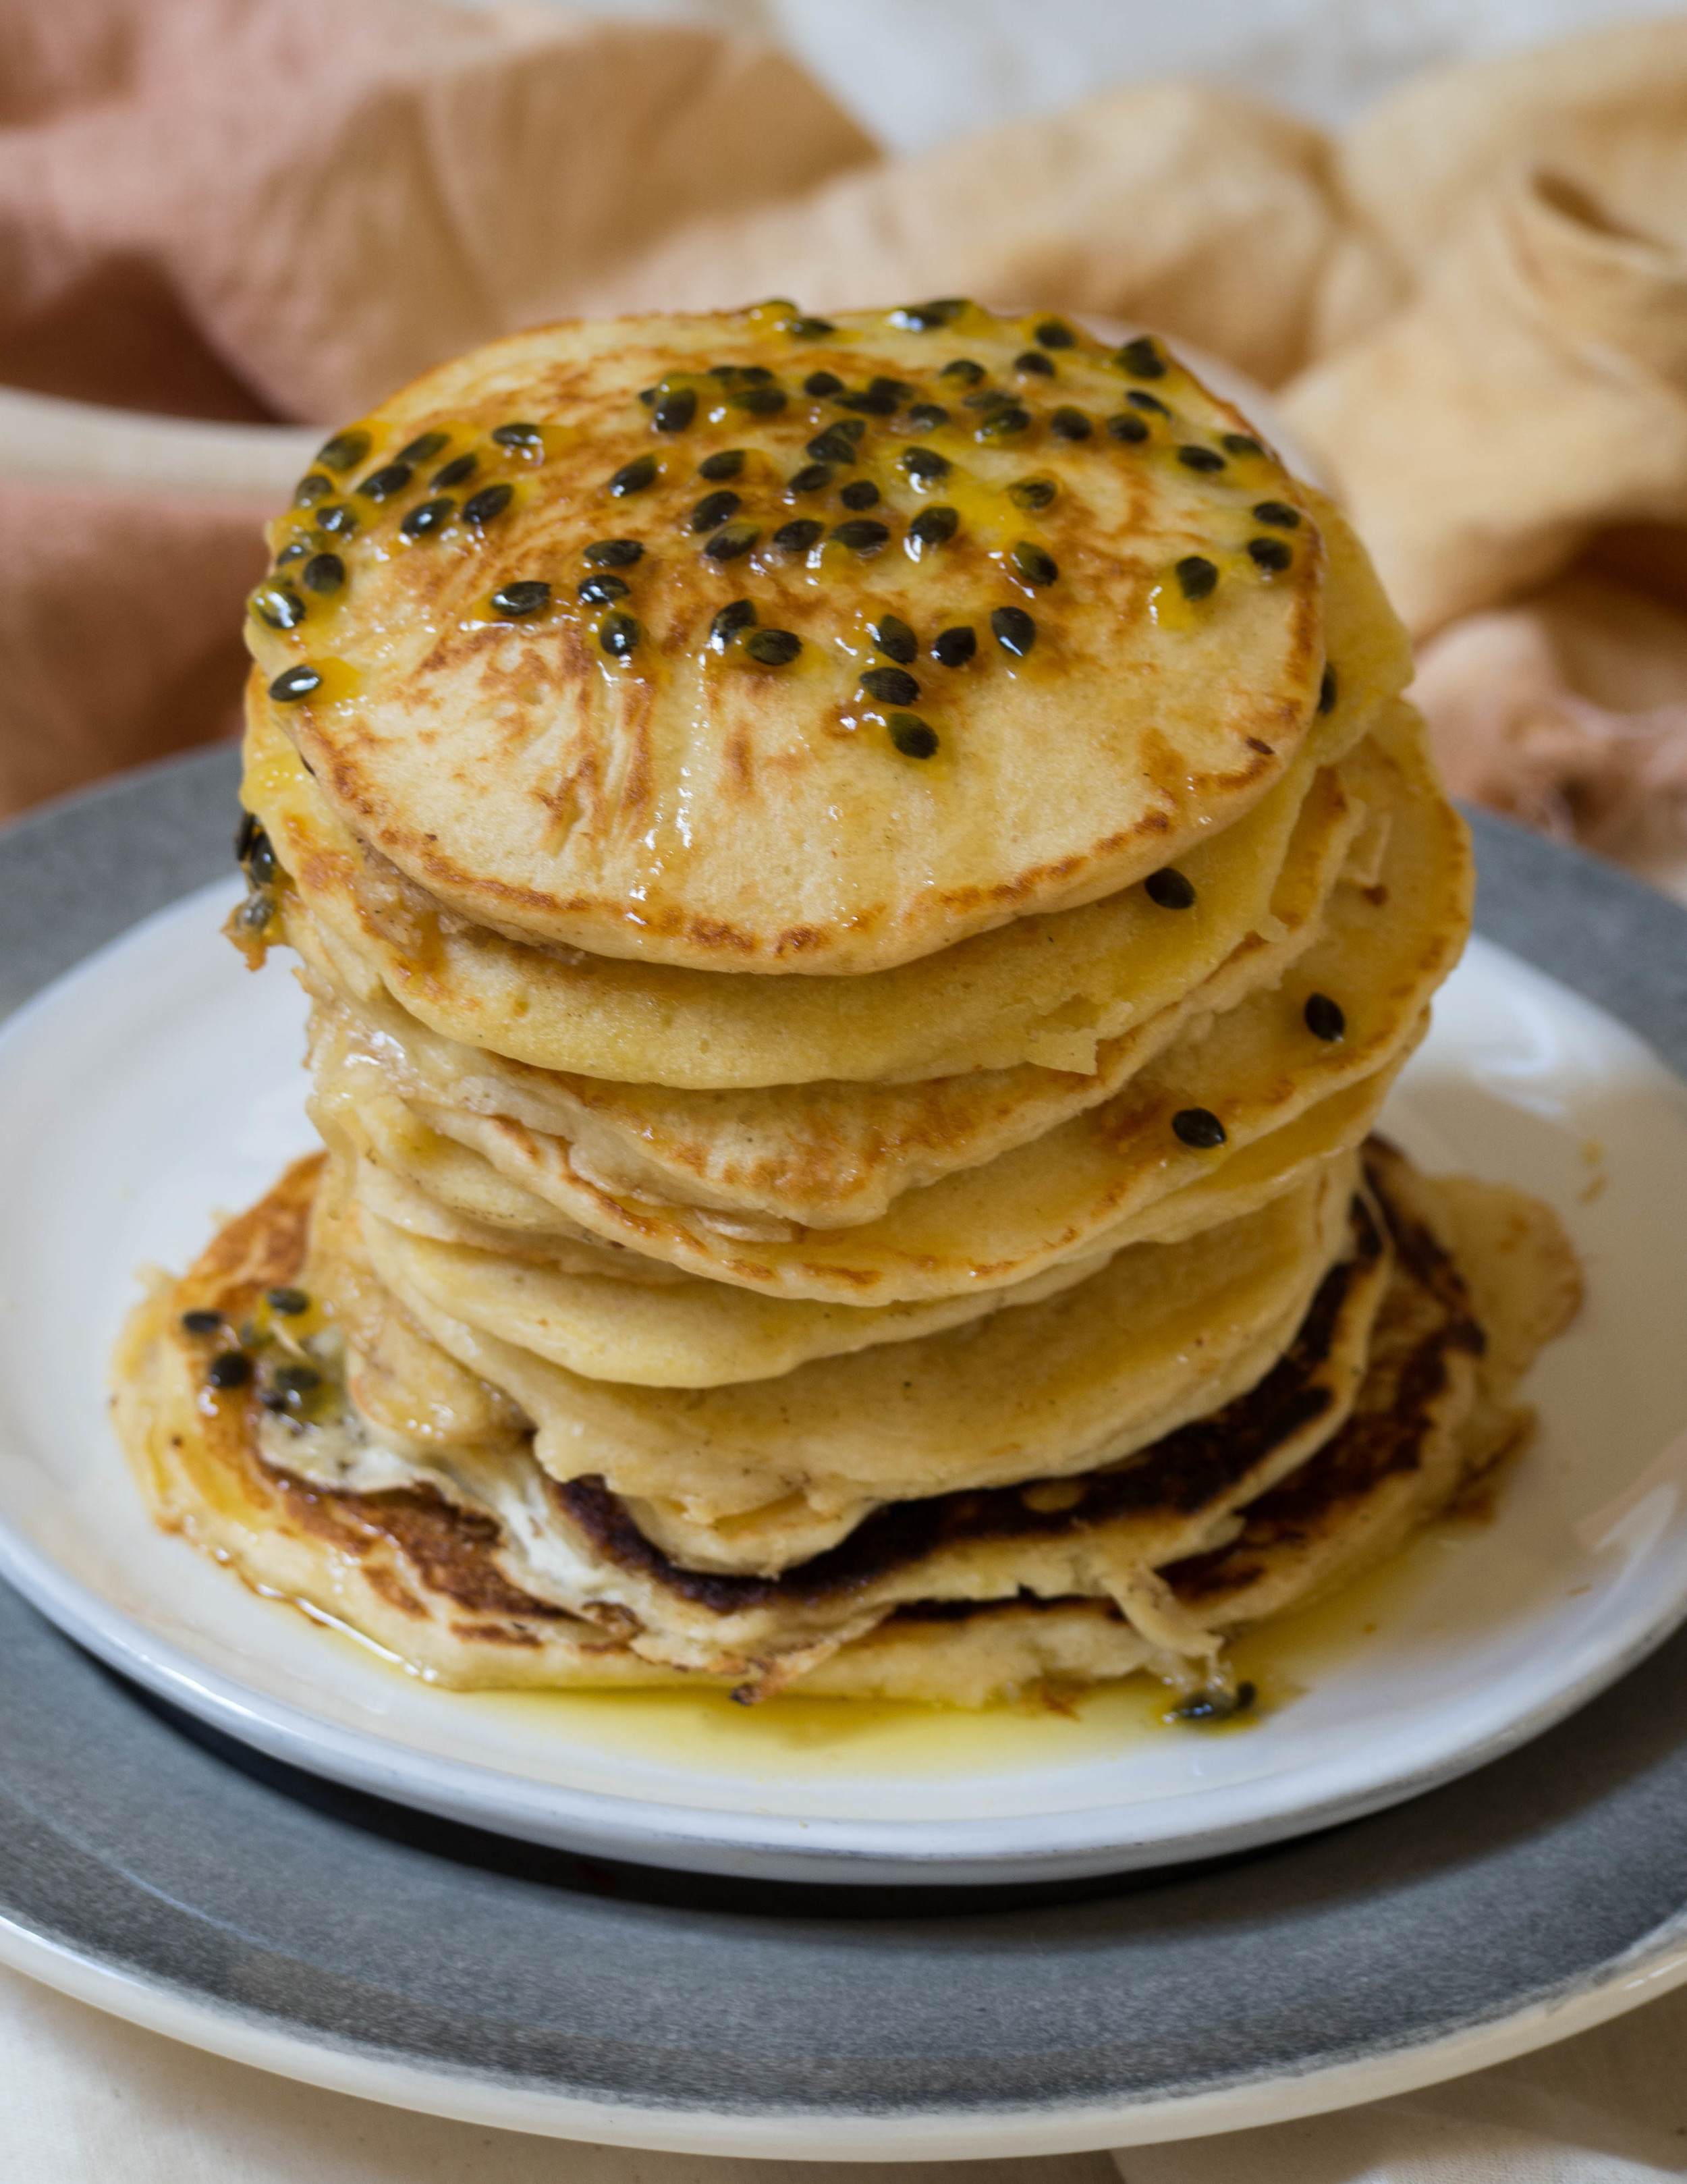 Passionfruit Pancakes - Kulinary Adventures of Kath